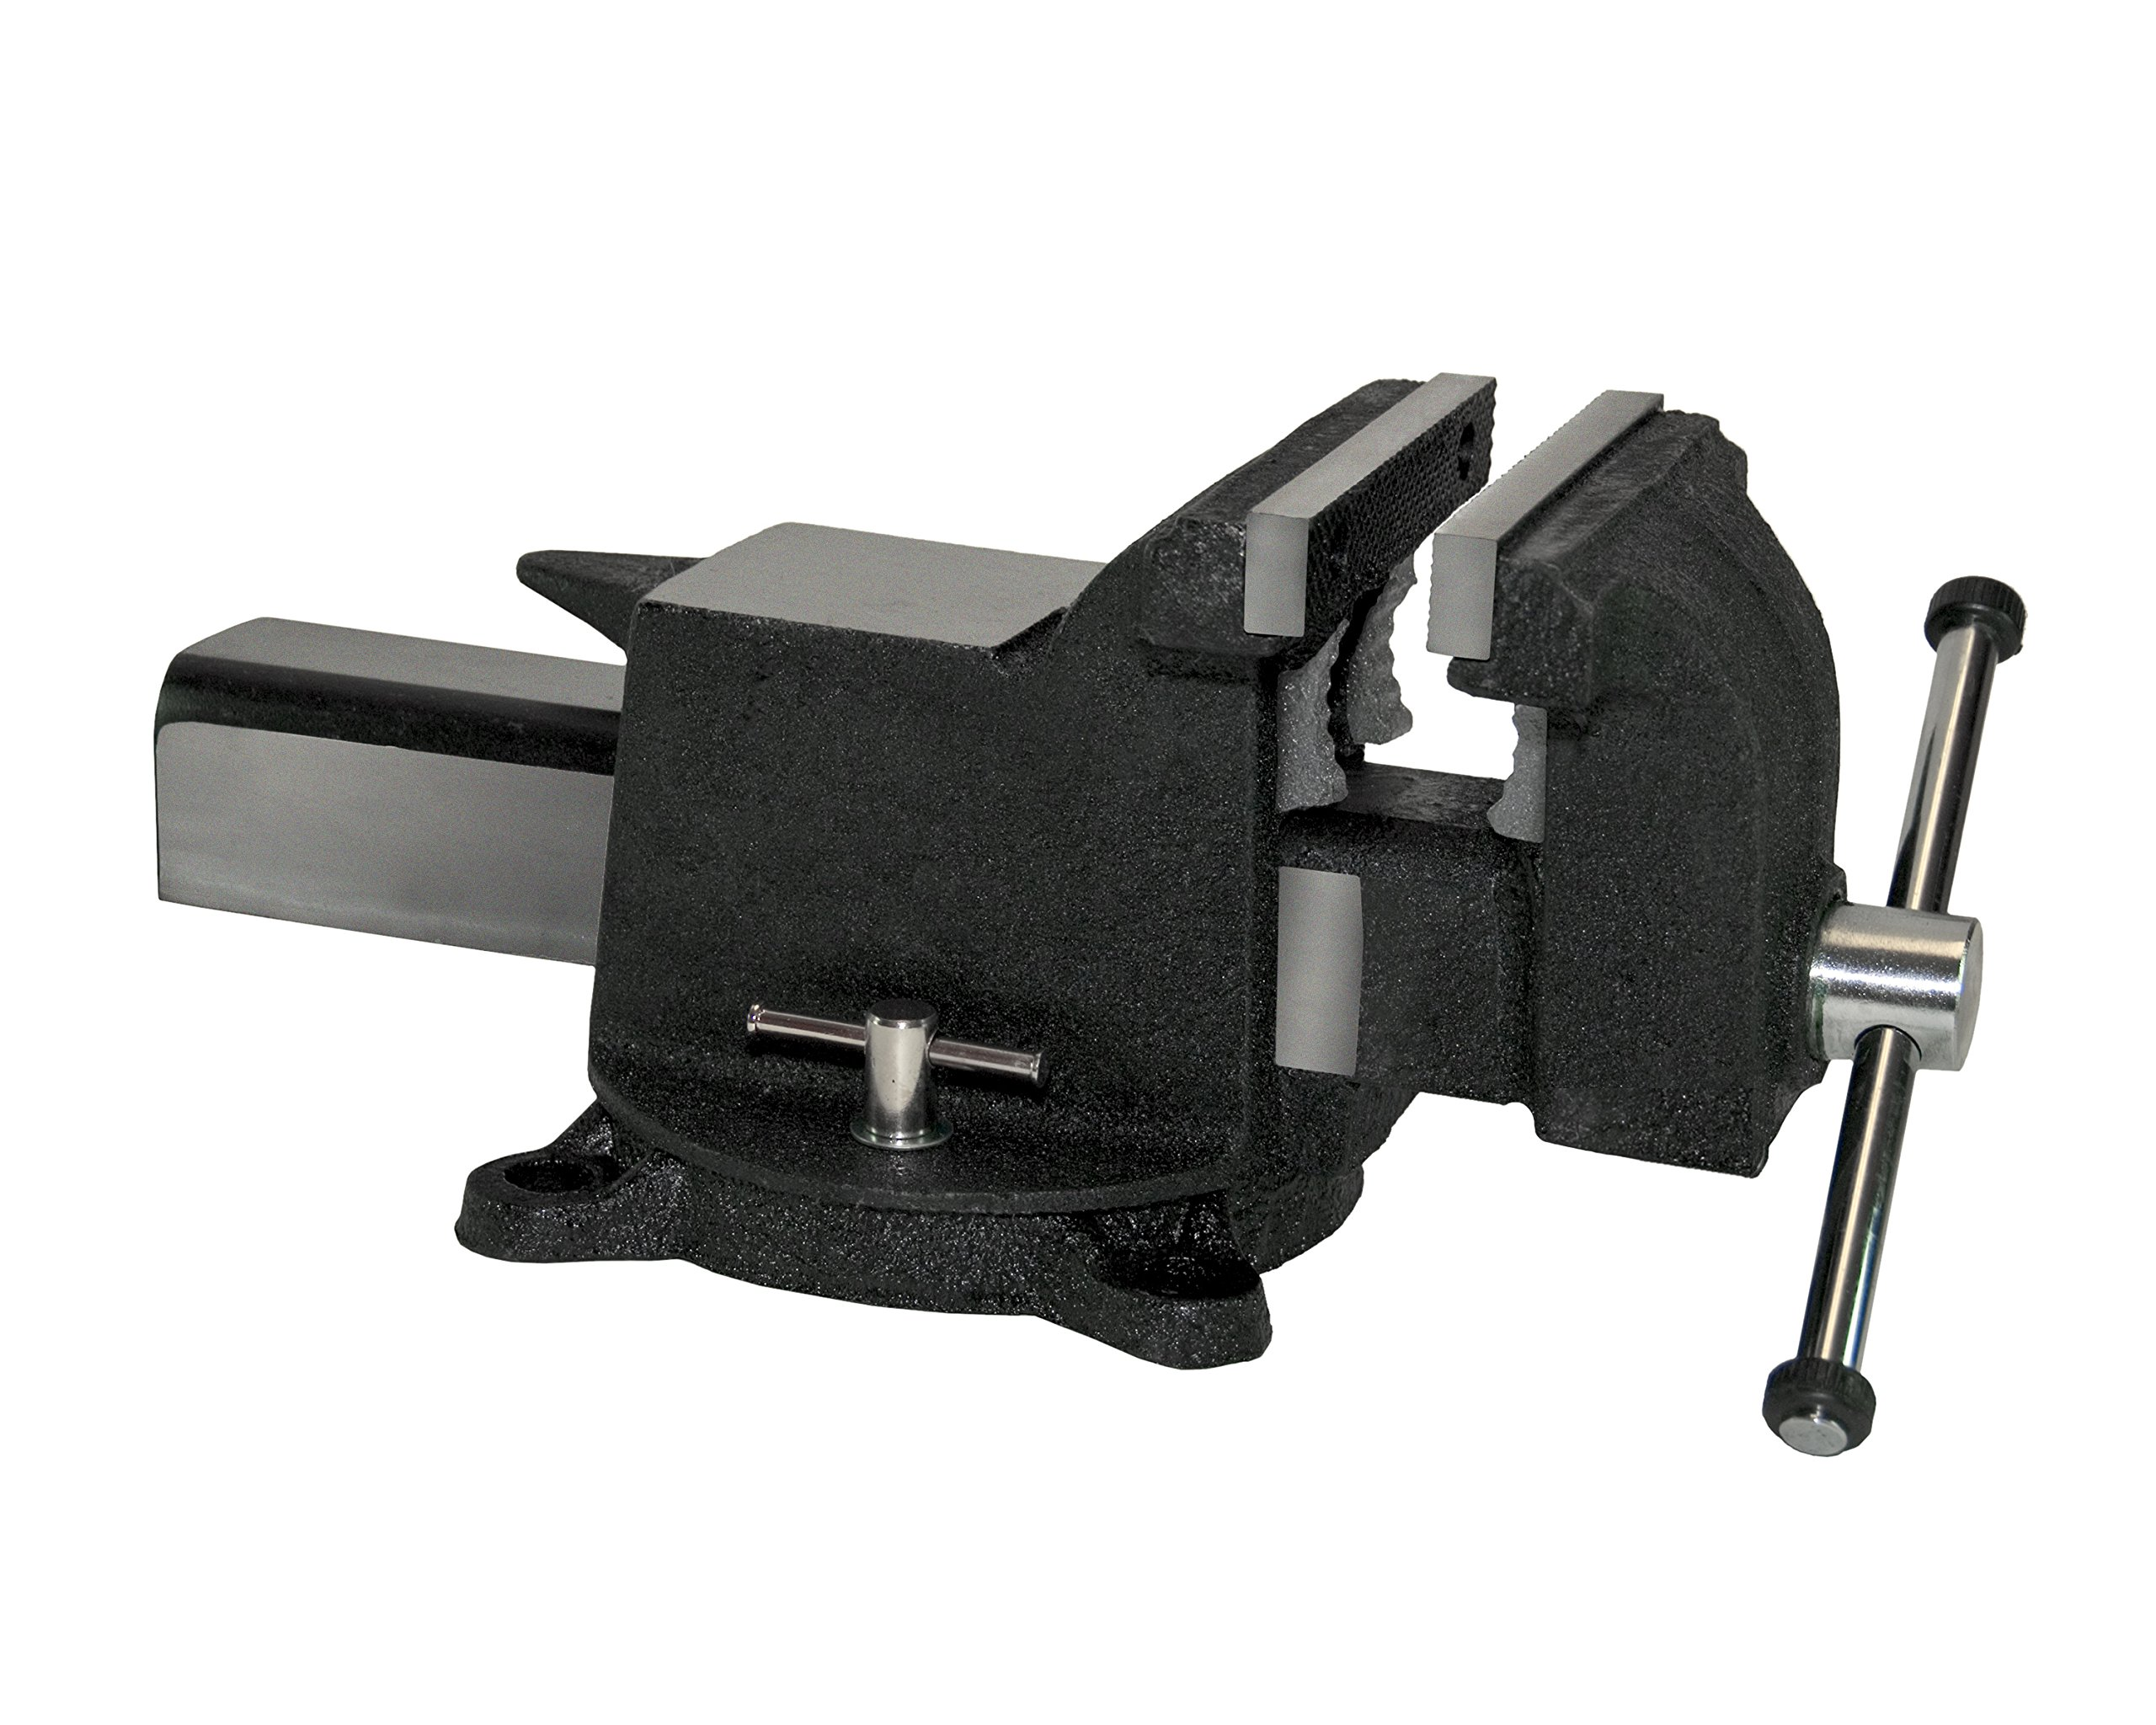 Yost Vises 906-AS 6'' Heavy Duty Steel Bench Vise by Yost Tools